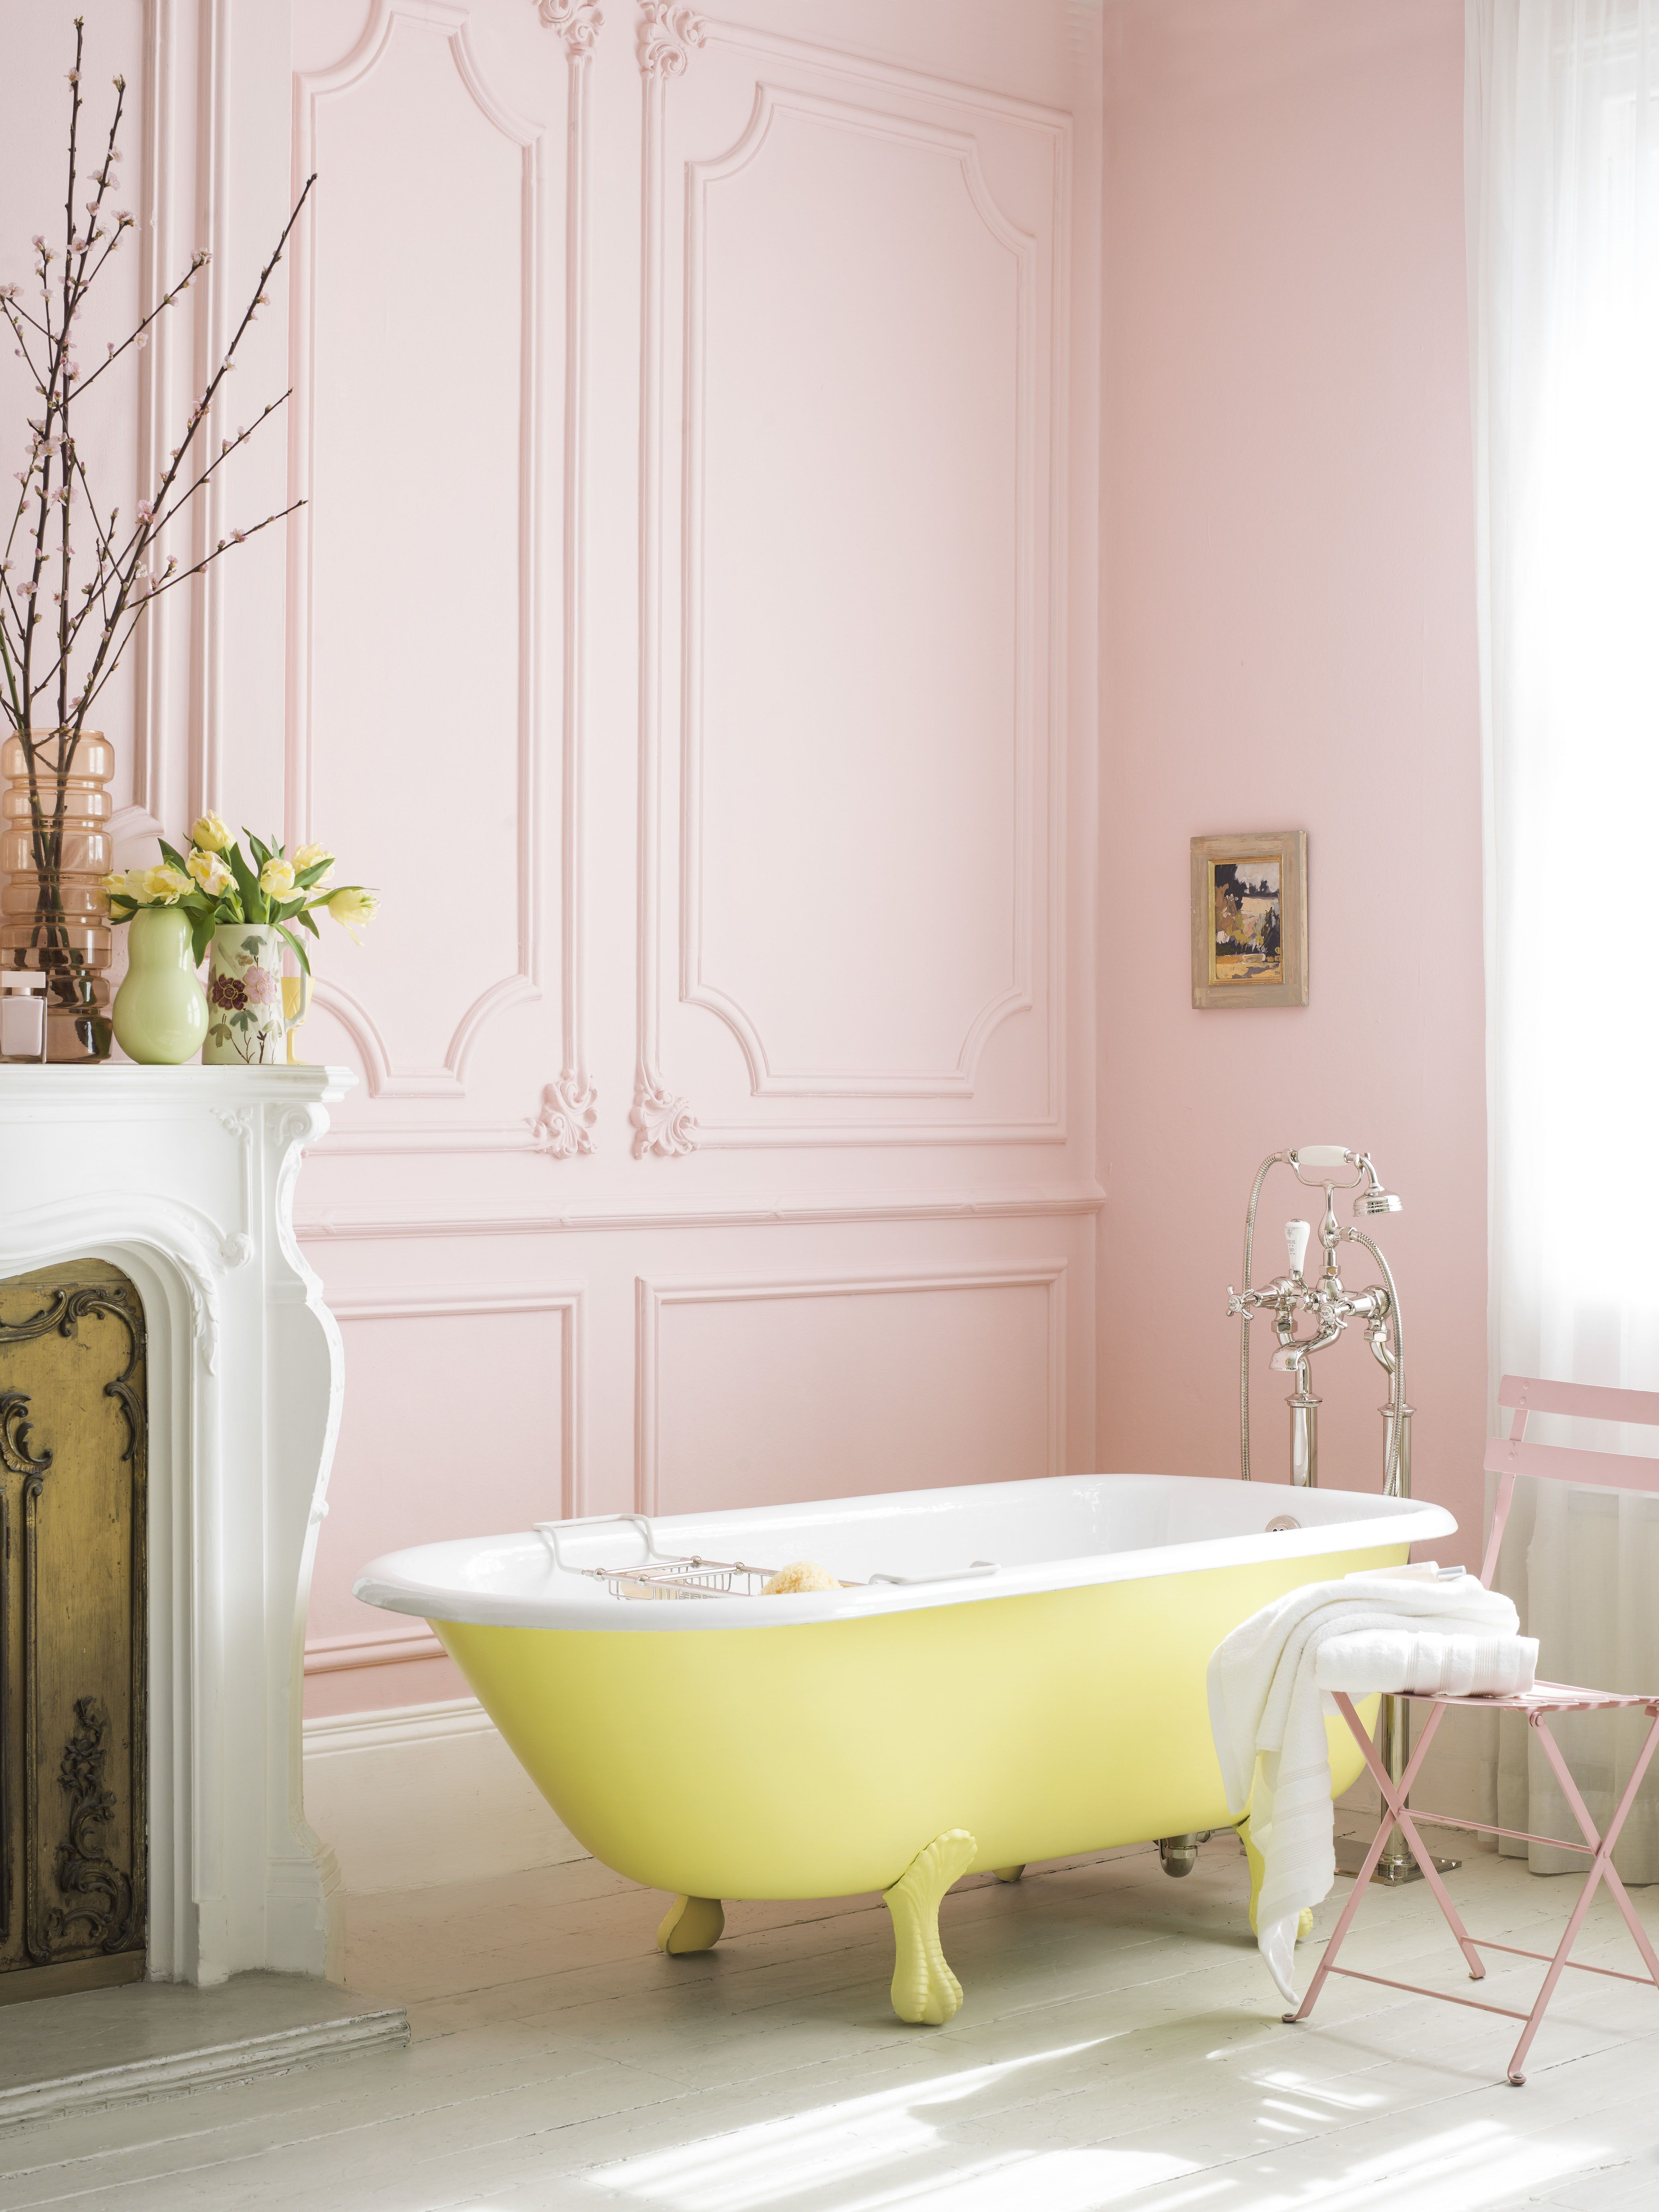 Pastel Pink Wall And Yellow Tub Rised Design On Could Be Easily Replicated With Door Embellishments Wood Poles